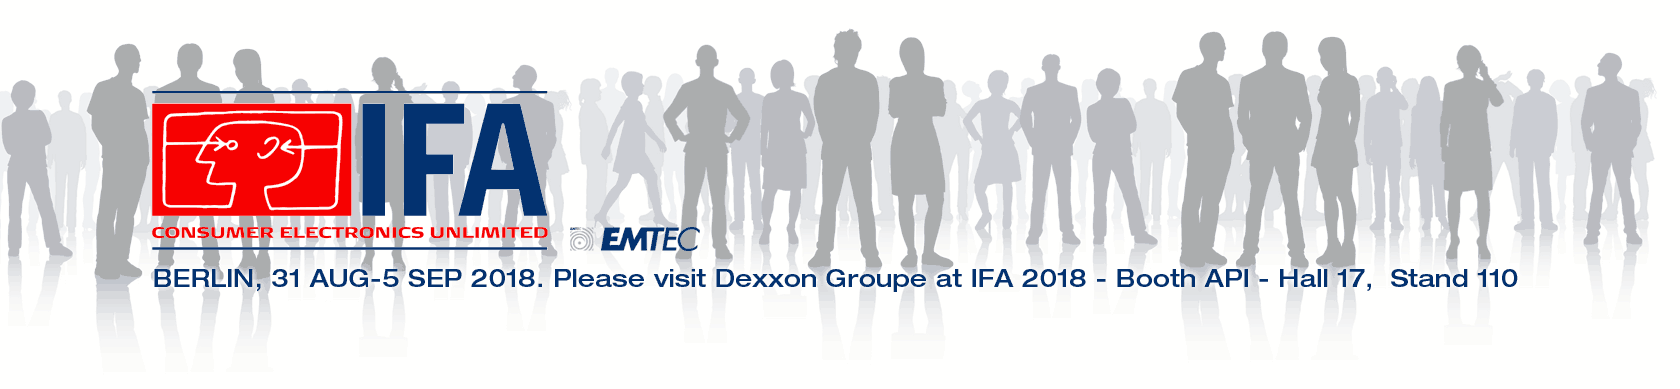 Please visit Dexxon Groupe at IFA 2018 - Aug 31st/Sept 5th - Booth API - Hall 17,  Stand 110